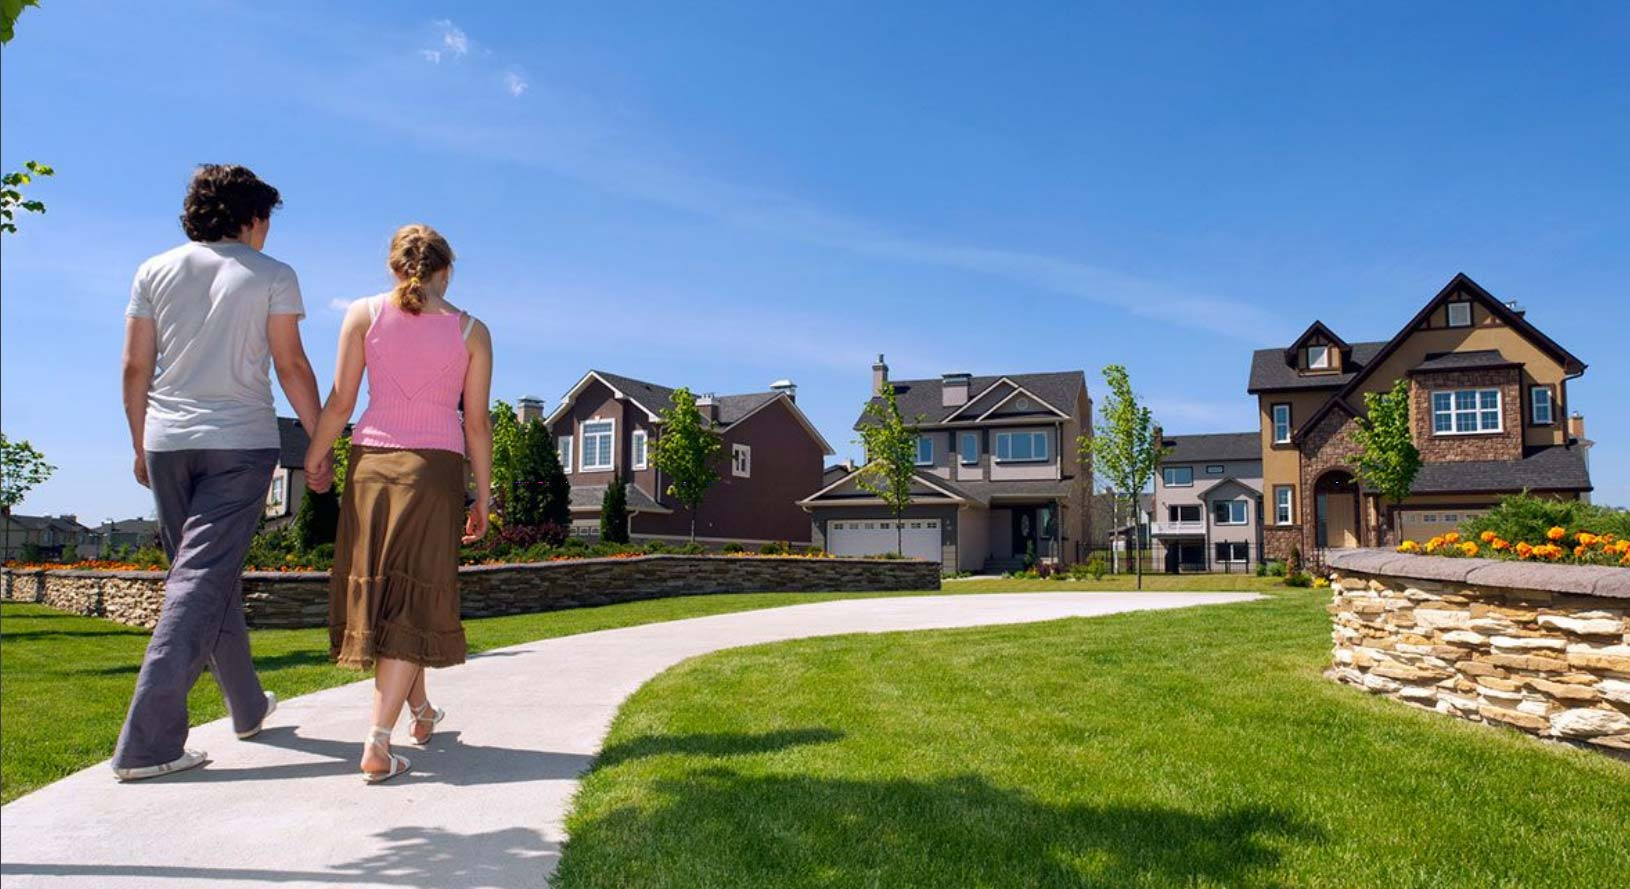 Young couple walking toward community selling new homes